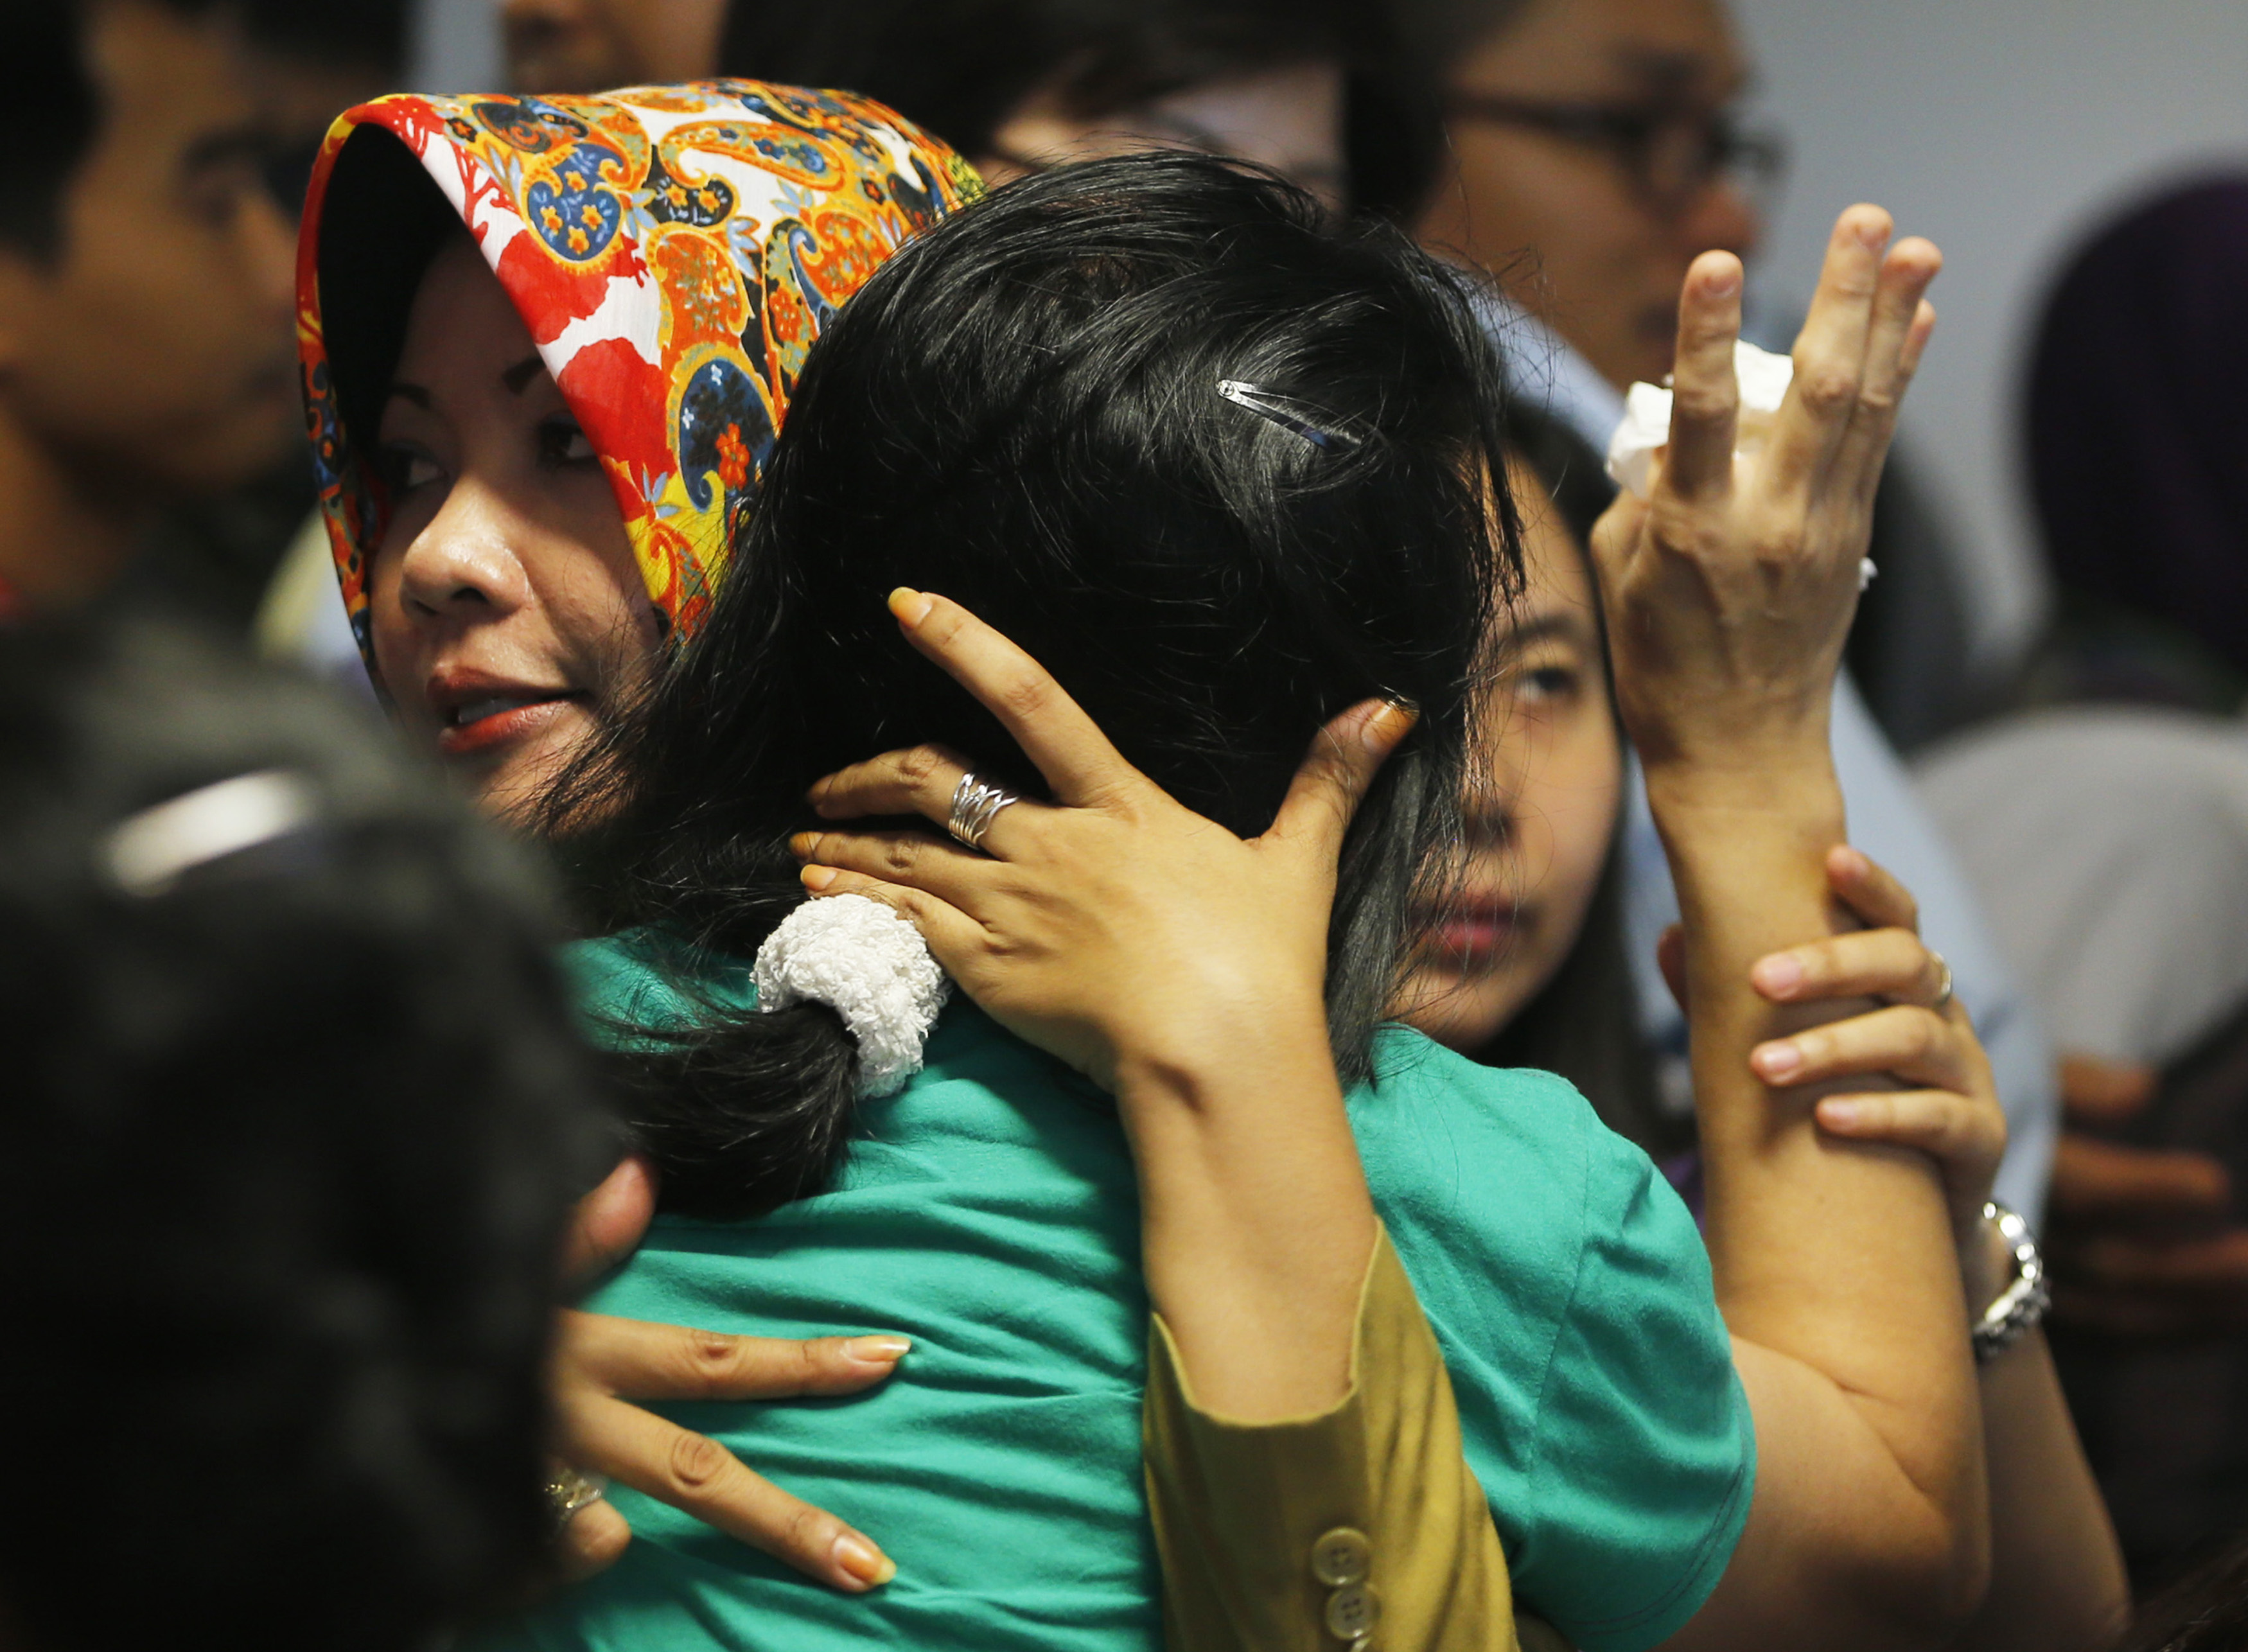 A government official, left, tries to calm a family member of passengers on board AirAsia Flight QZ 8501 at a waiting area in Juanda International Airport in Surabaya, Indonesia, on Dec. 30, 2014